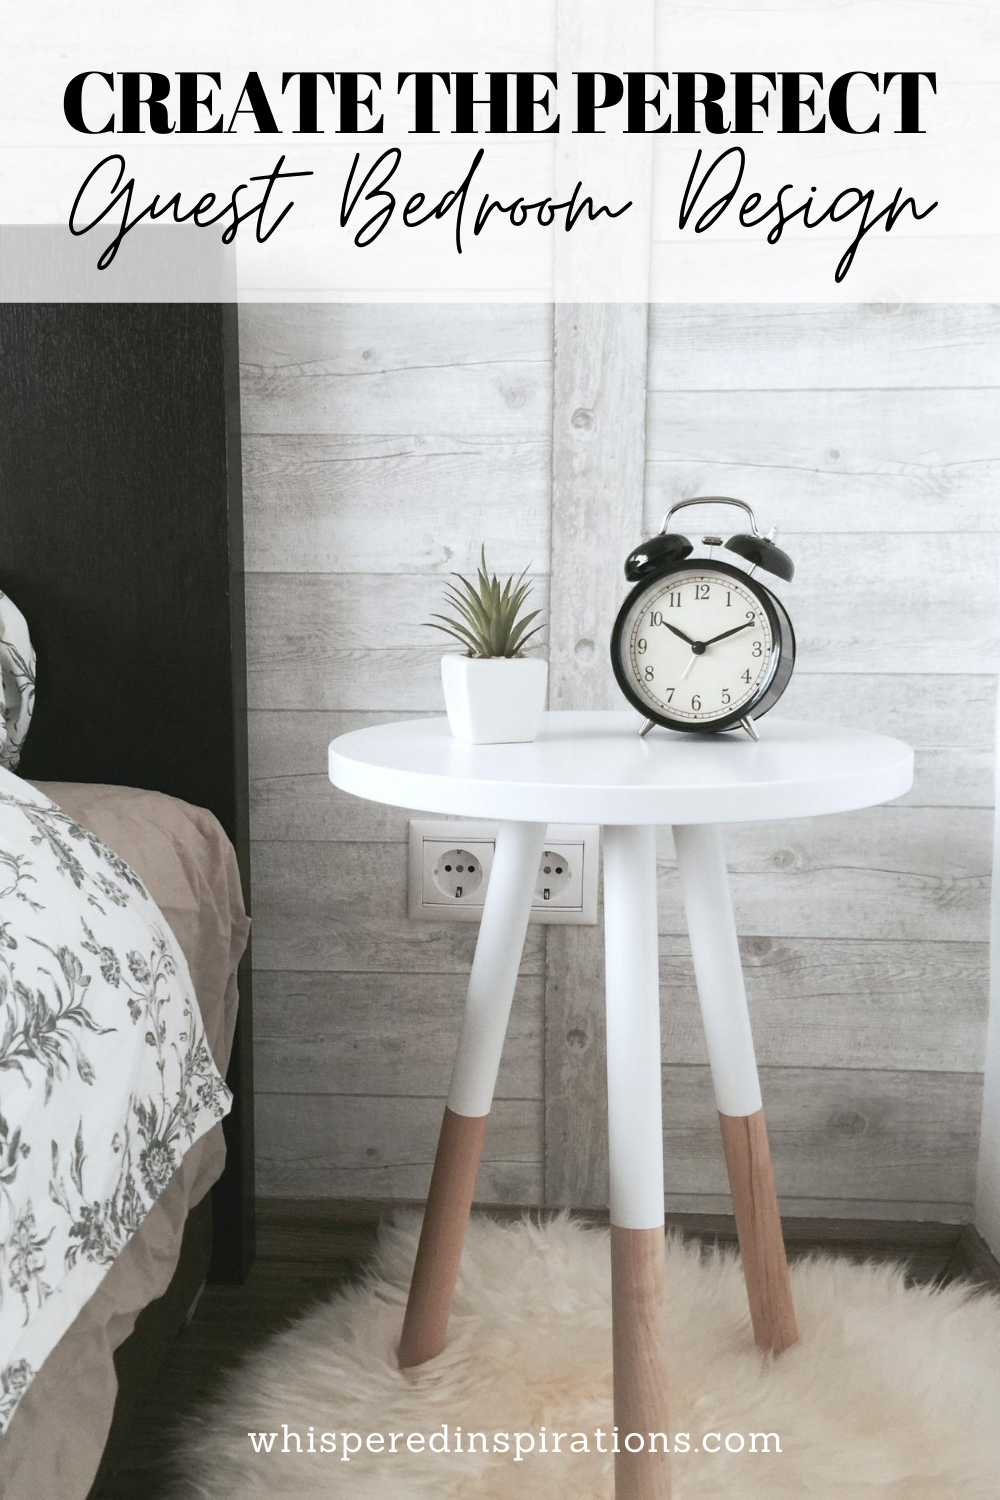 """A side table with a clock sit in a guest bedroom. A banner reads, """"Create the Perfect Guest Bedroom Design."""""""